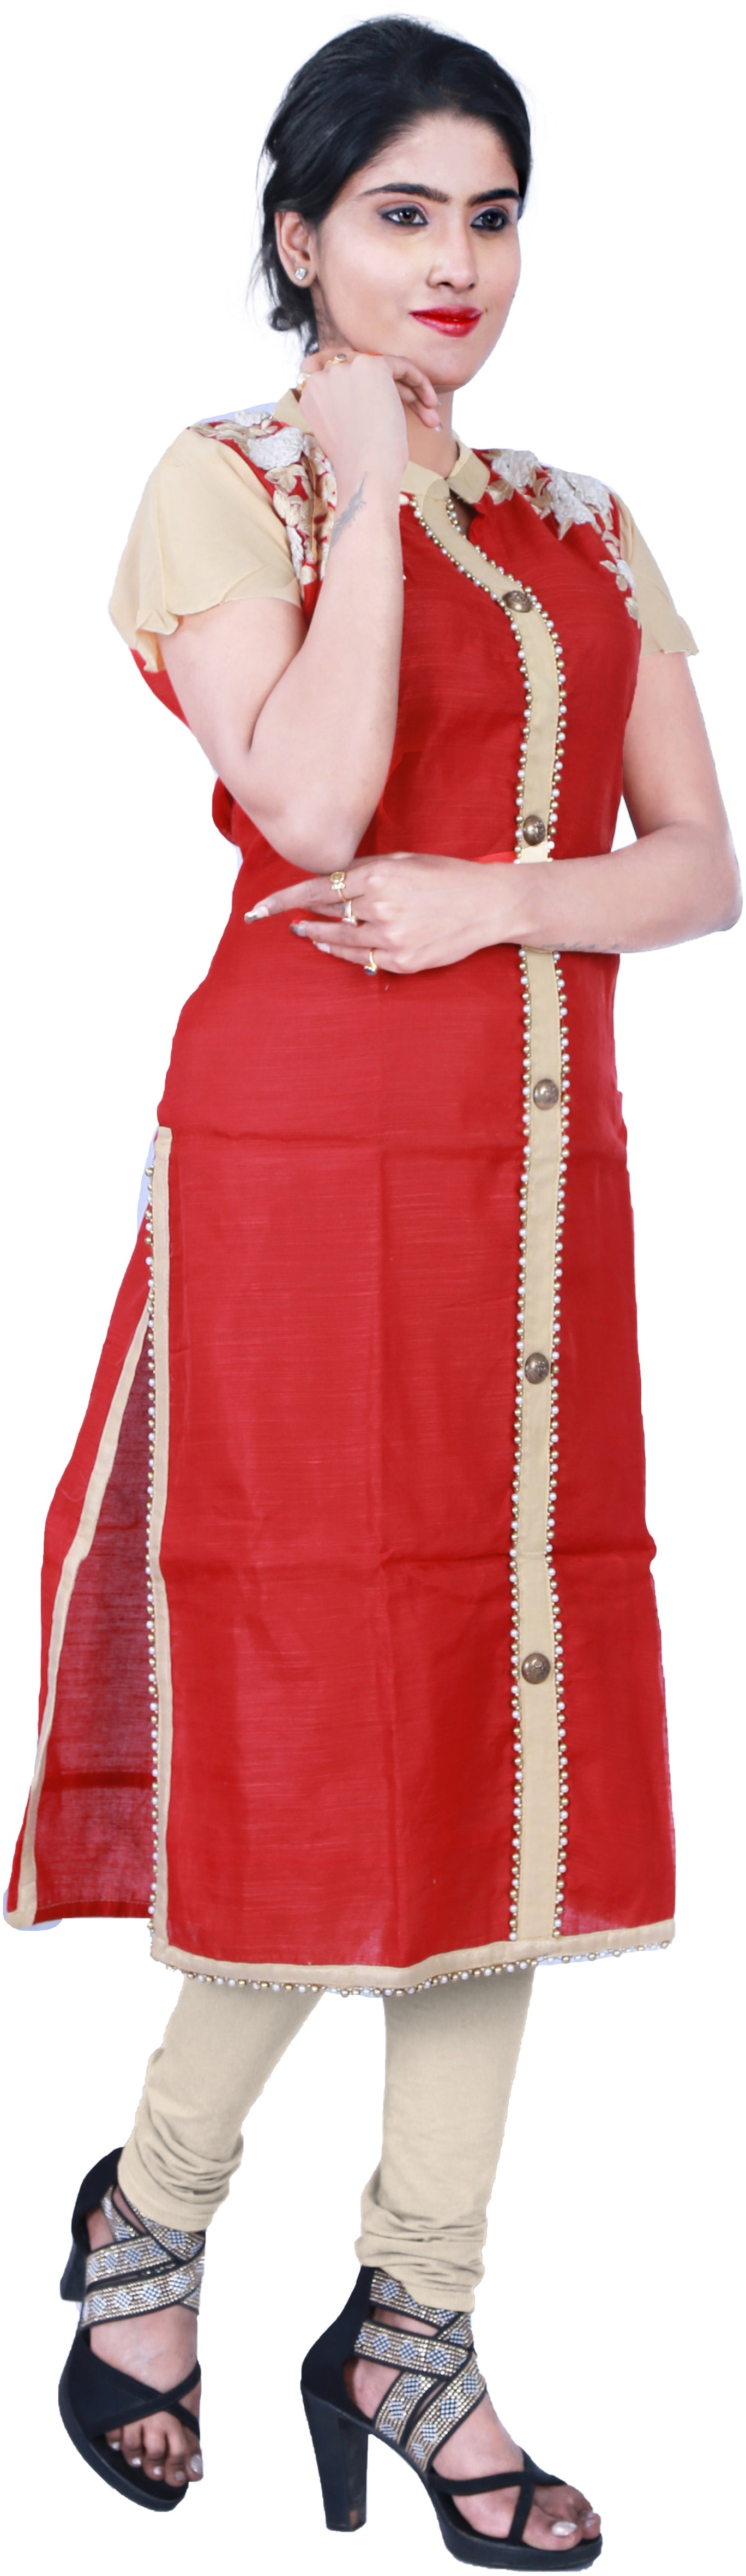 SMSAREE Red & Beige Designer Casual Partywear Cotton (Chanderi) & Georgette Sleeves Thread & Pearl Hand Embroidery Work Stylish Women Kurti Kurta With Free Matching Leggings D364